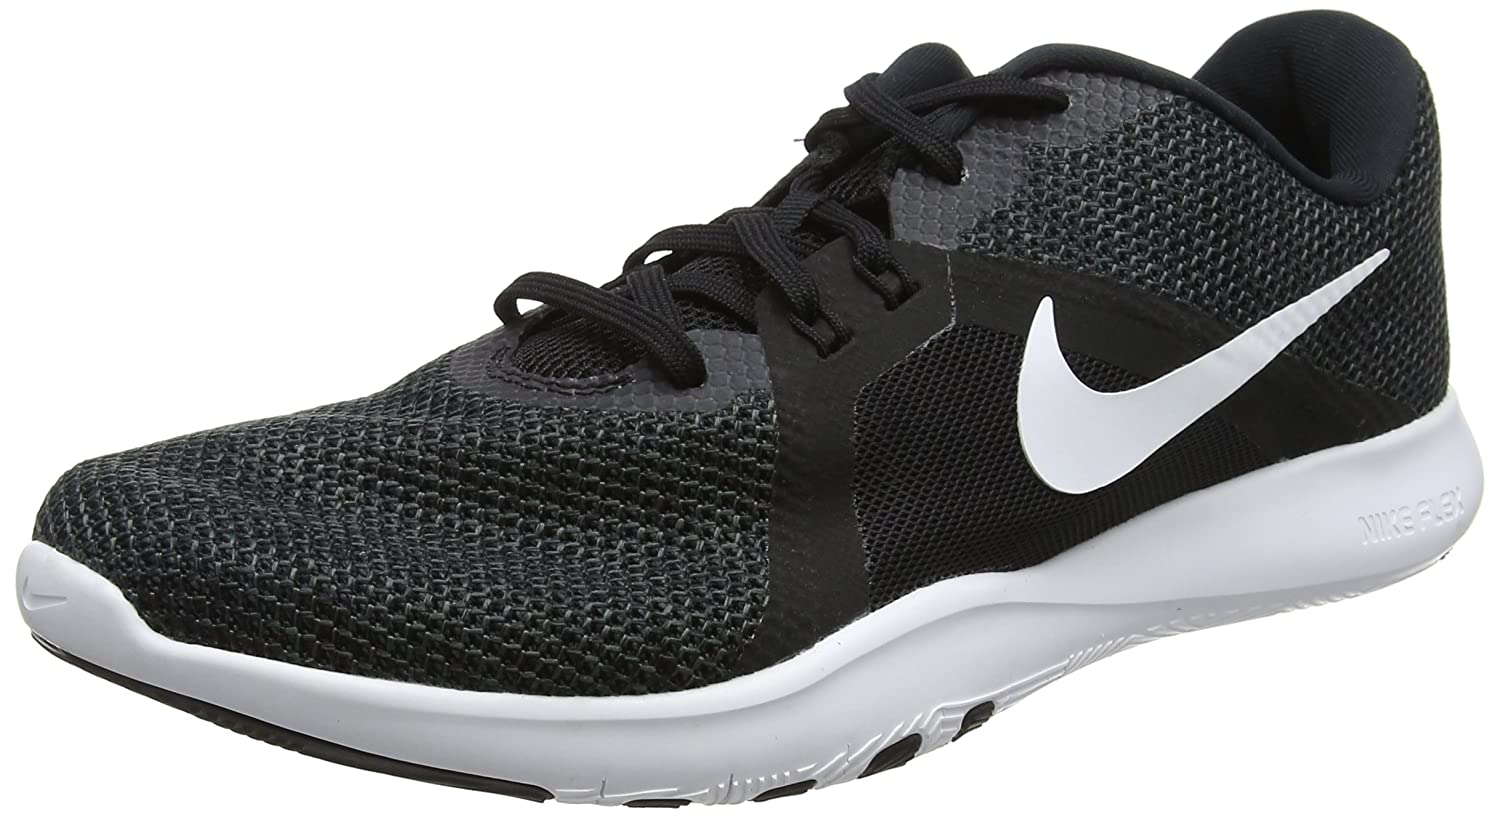 NIKE Women's Flex 8 Cross Trainer B0761XYQC9 6 B(M) US|Black/White - Anthracite